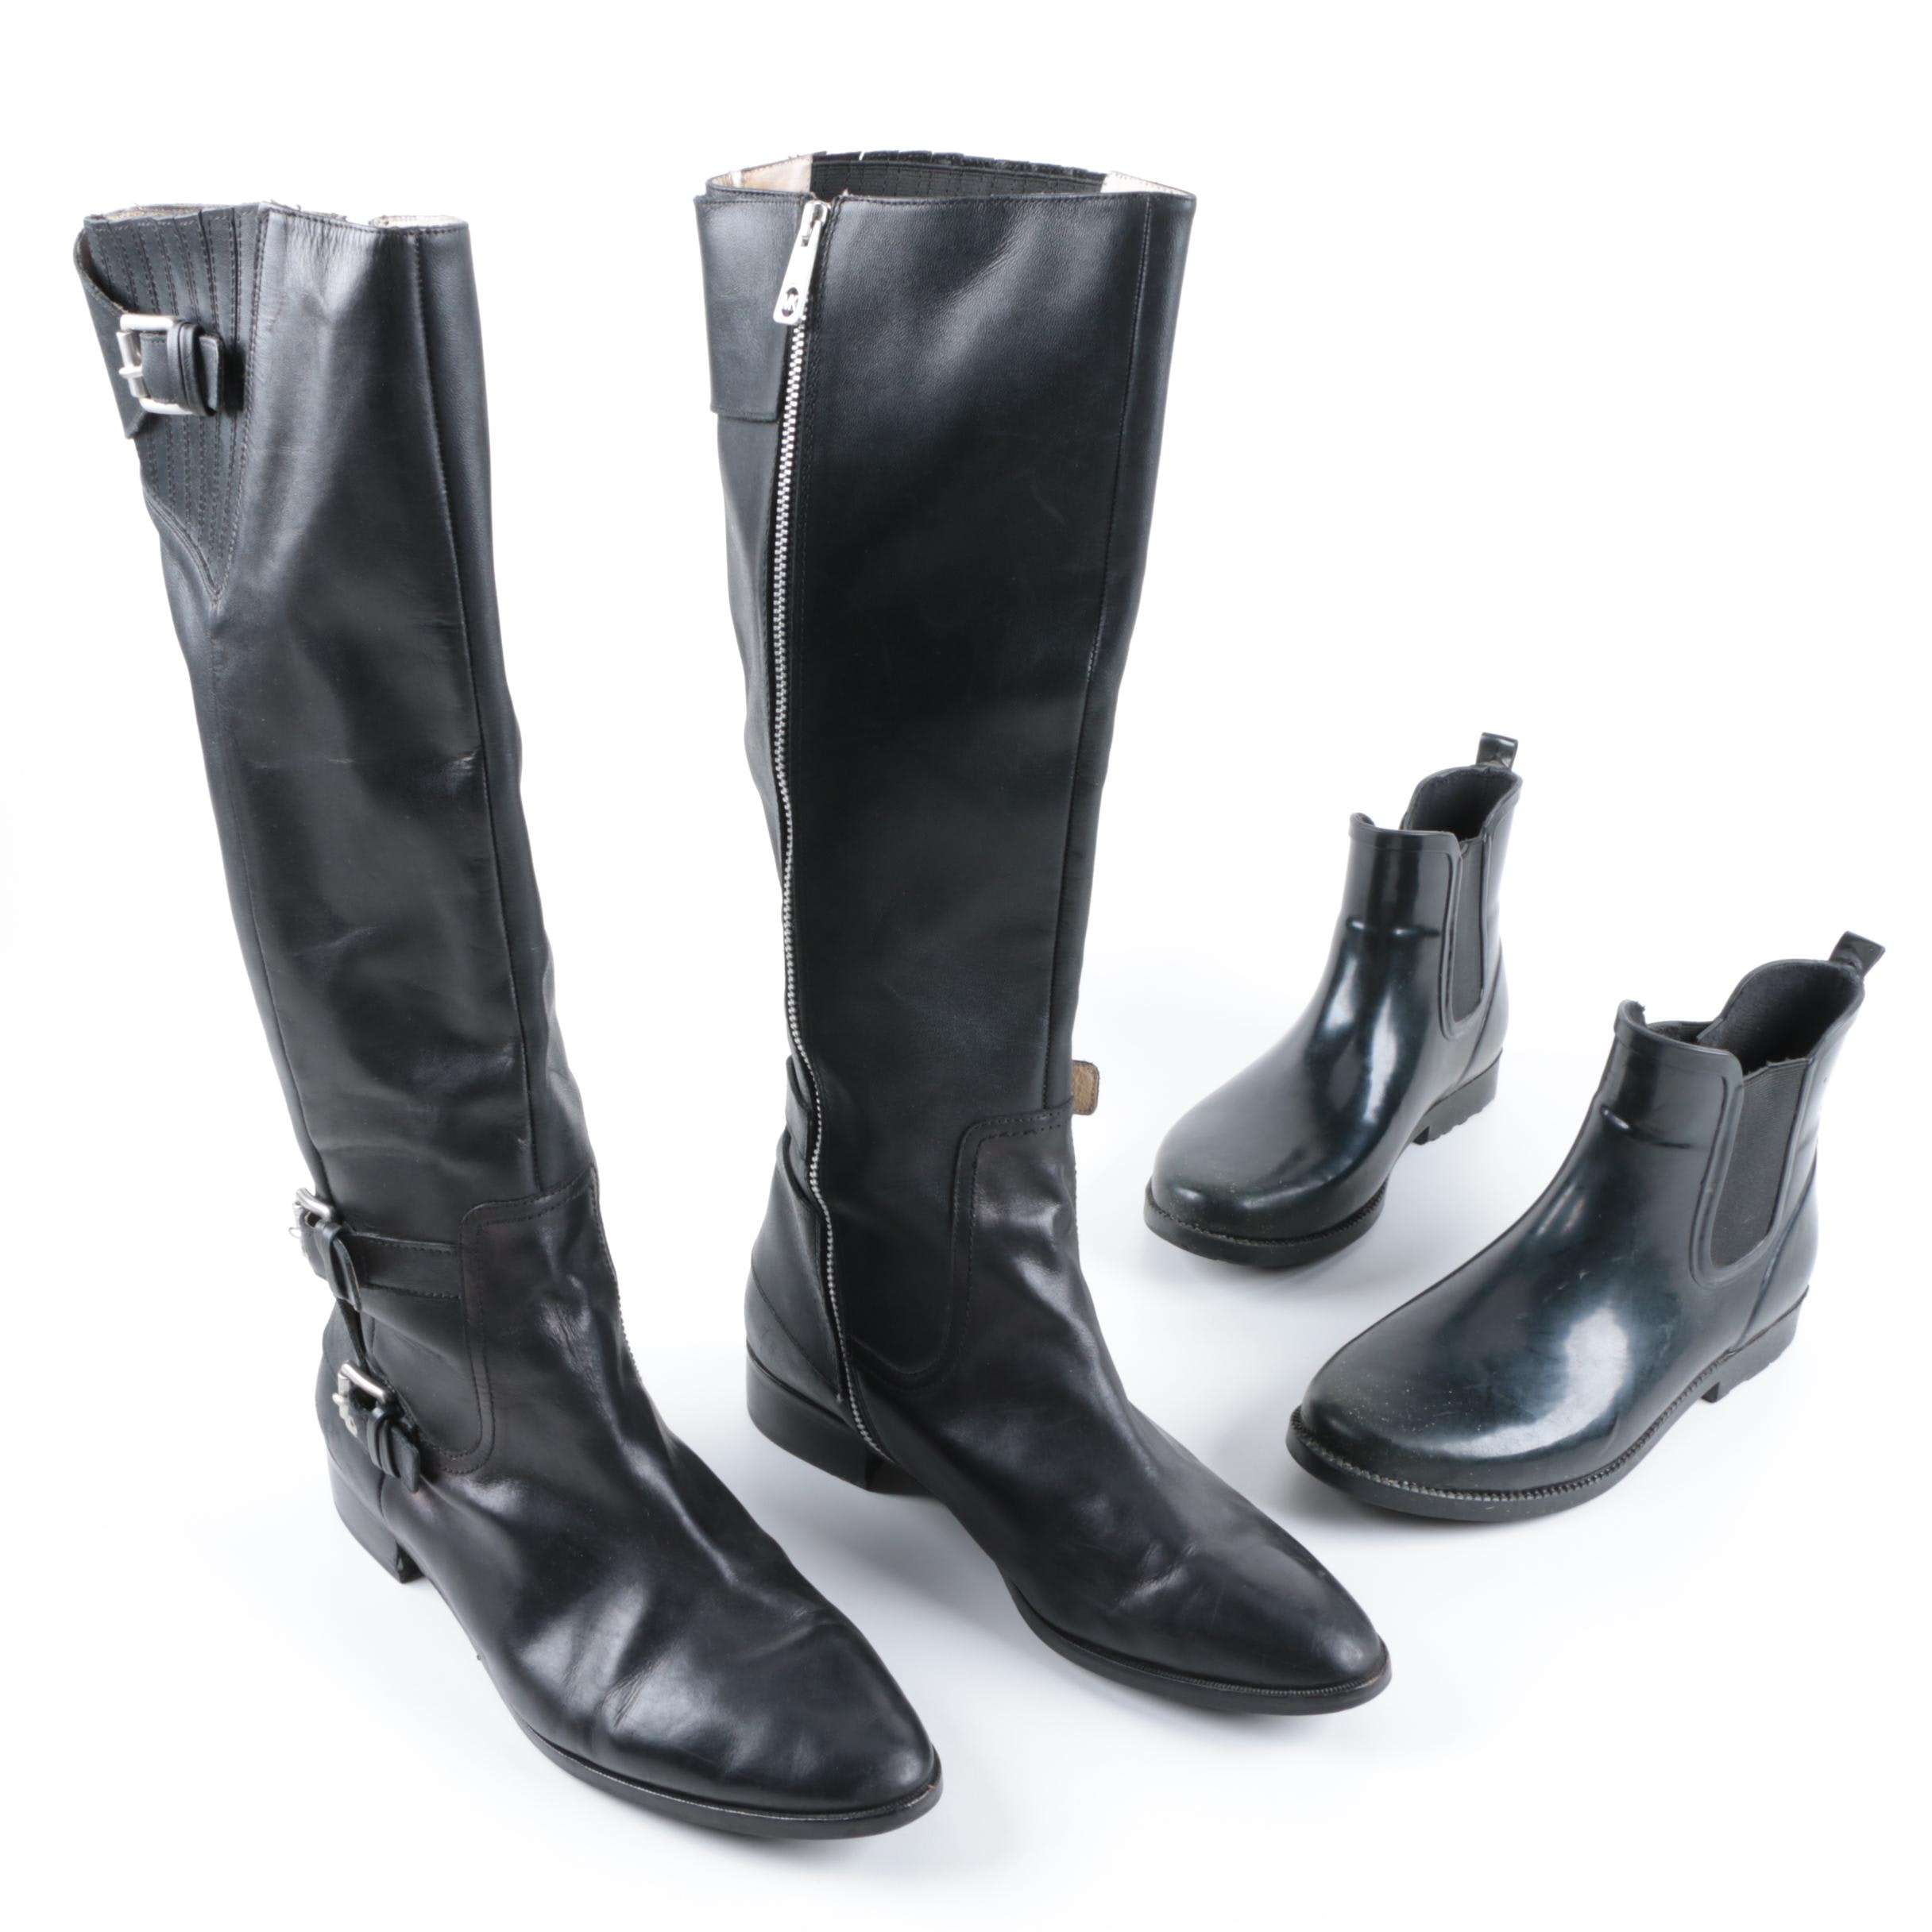 Michael Michael Kors Black Leather Tall Boots and Black Rain Booties